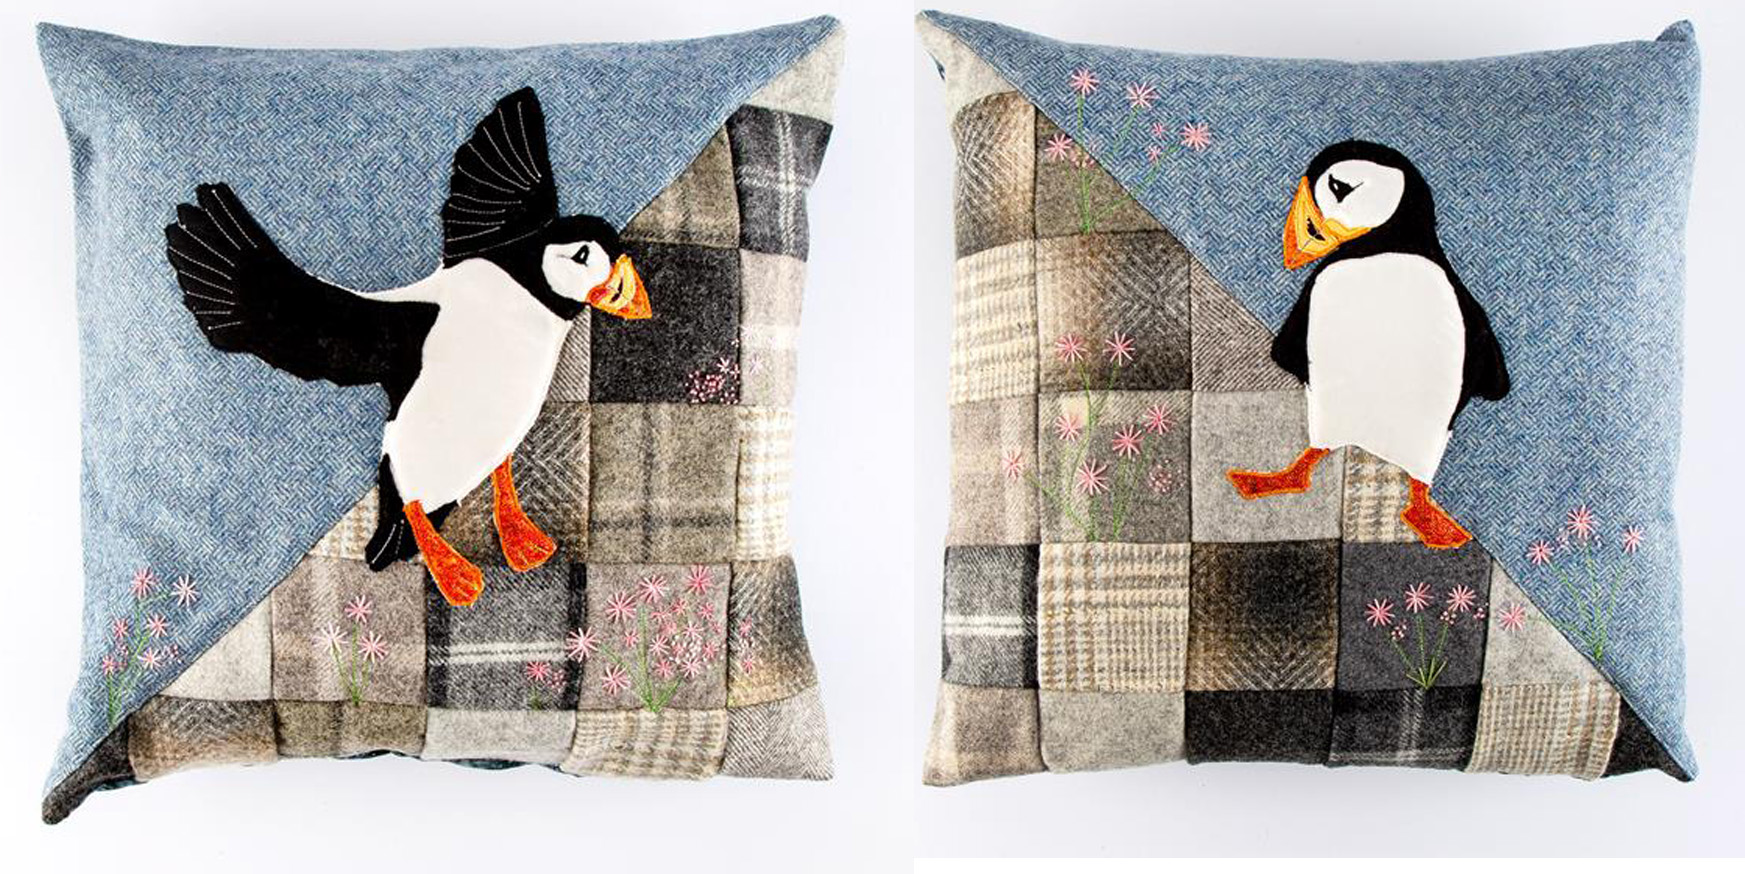 Chuffin' Puffins kit